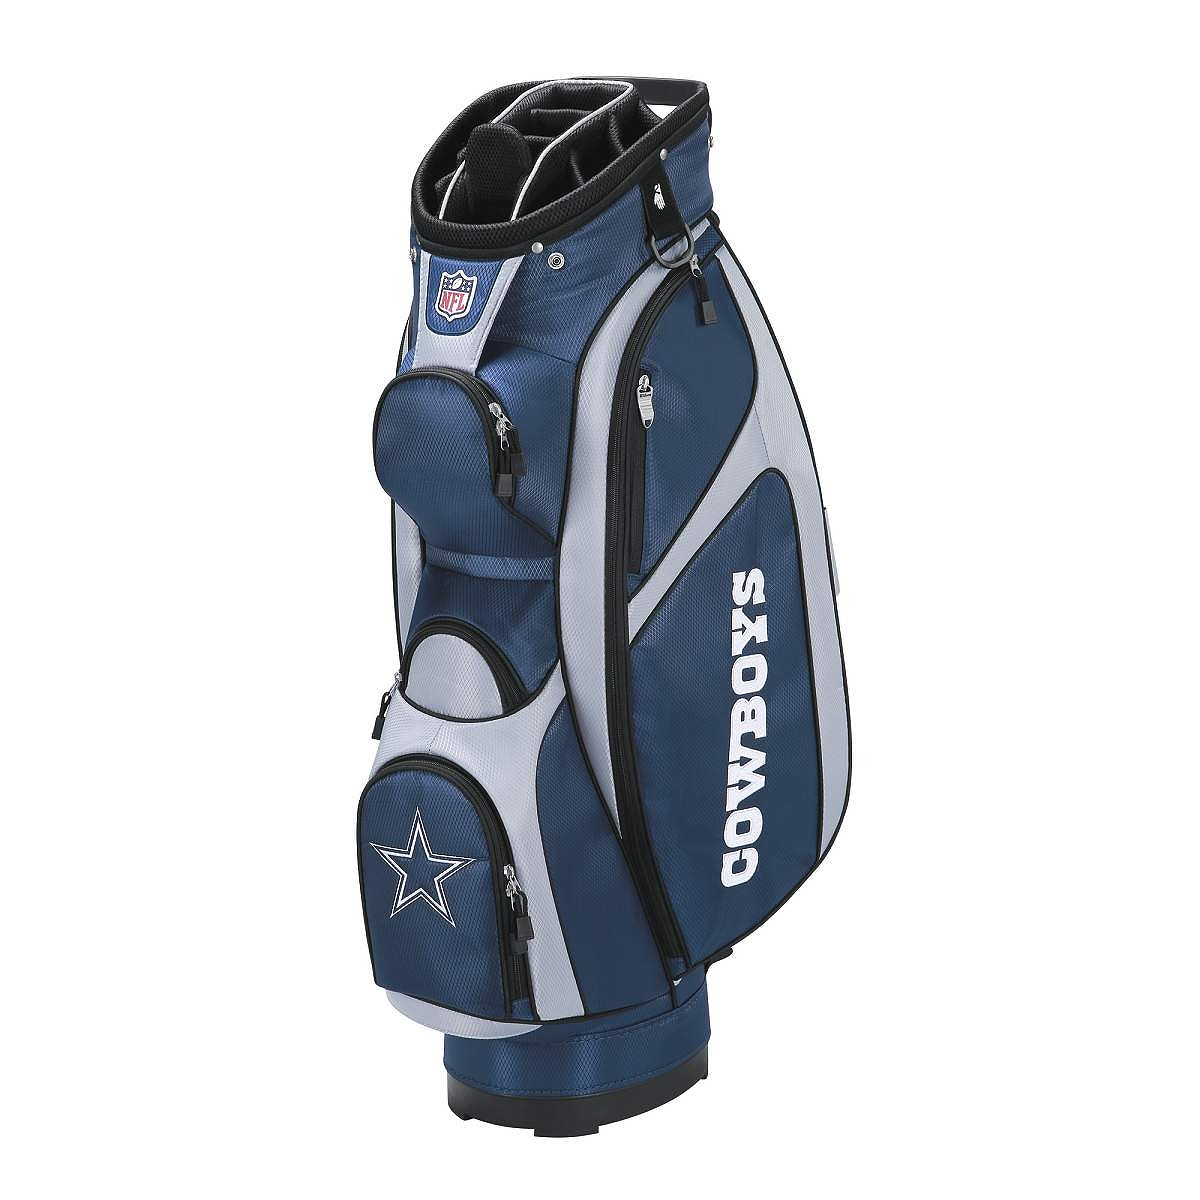 Dallas Cowboys Wilson Nfl Golf Cart Bag